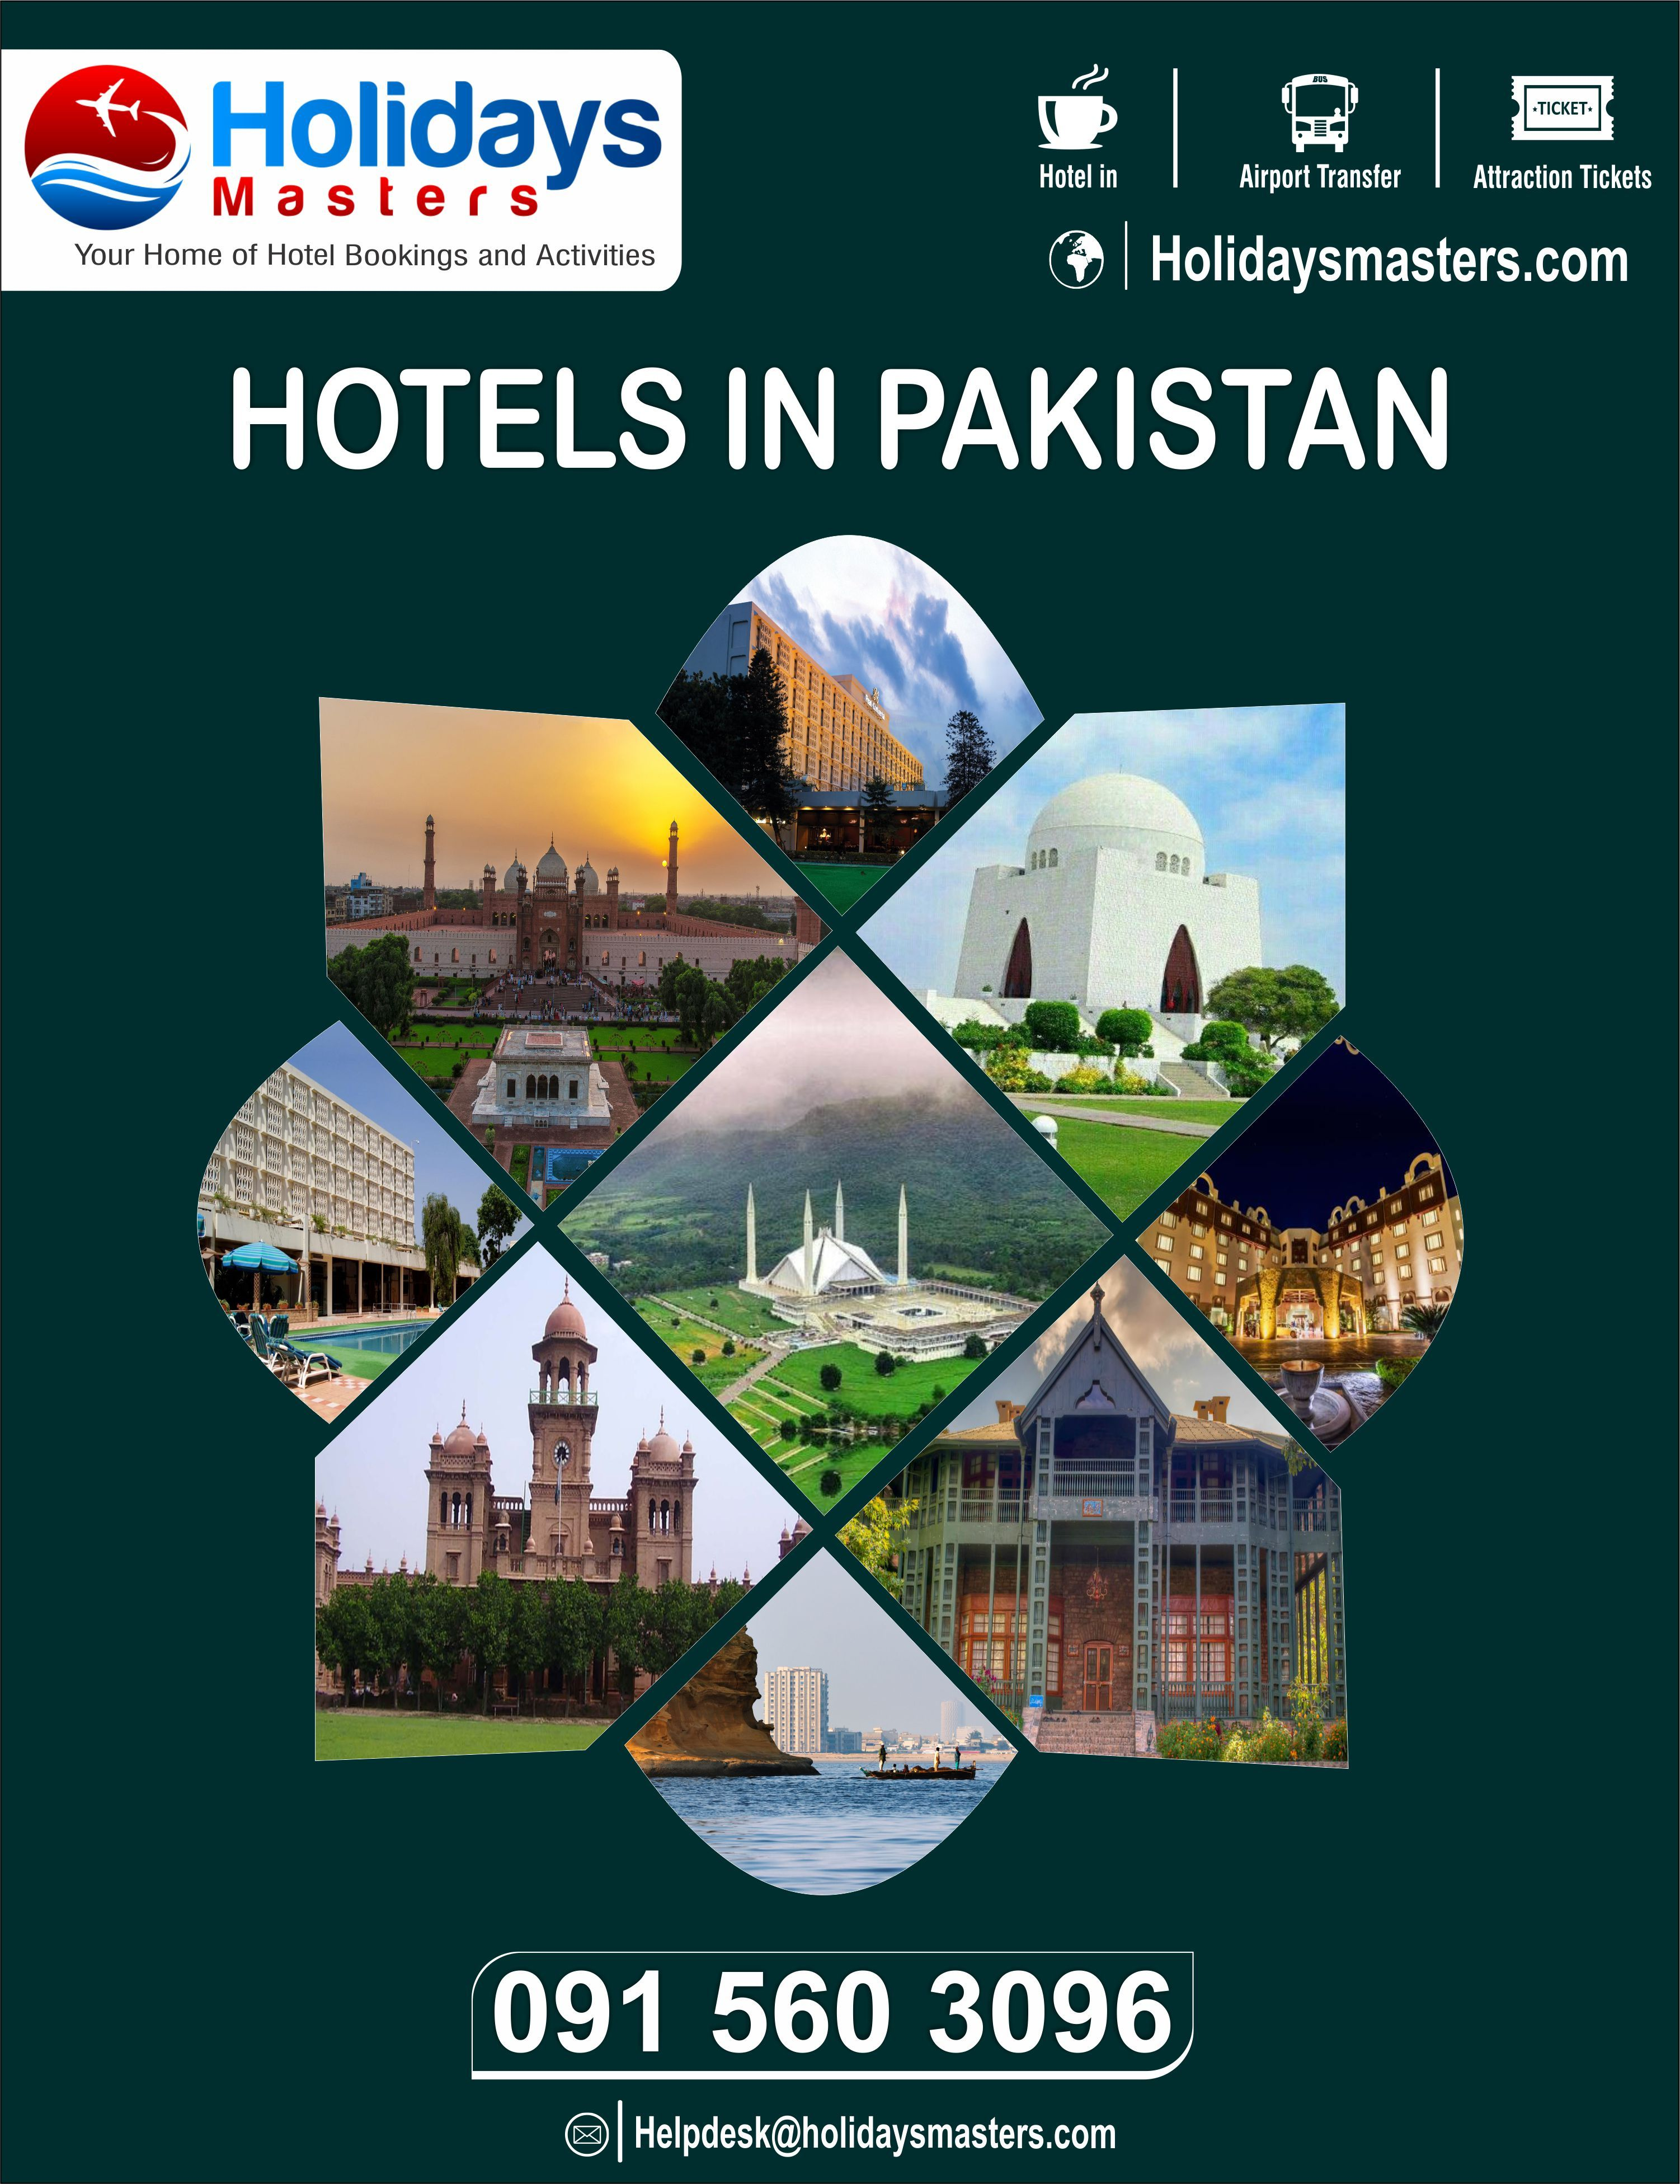 If You Are Looking For Best Hotels In Pakistan To Stay While